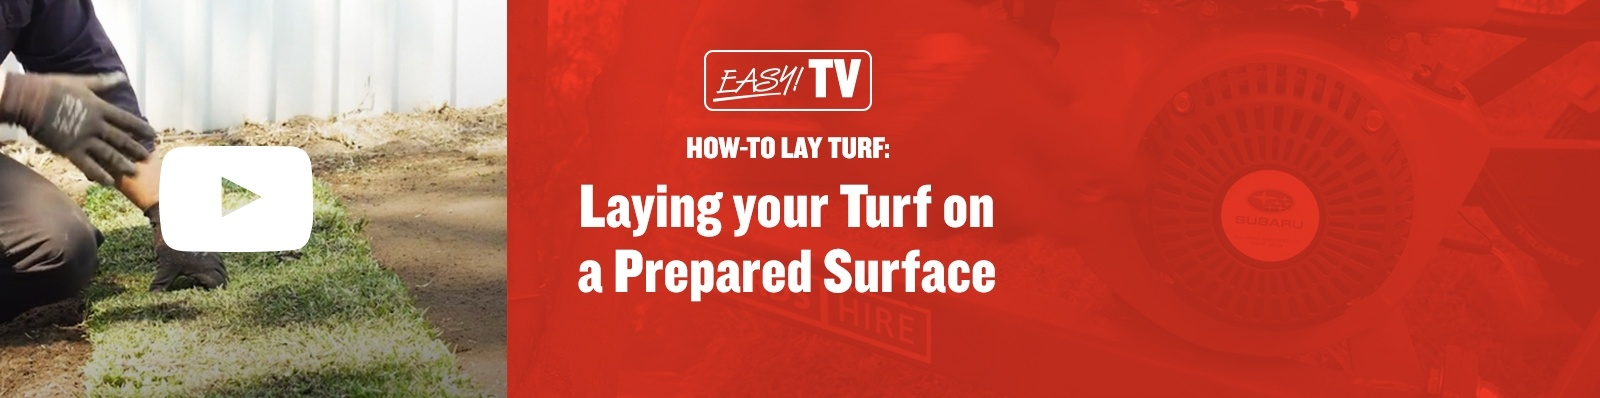 EasyTV Turf Laying